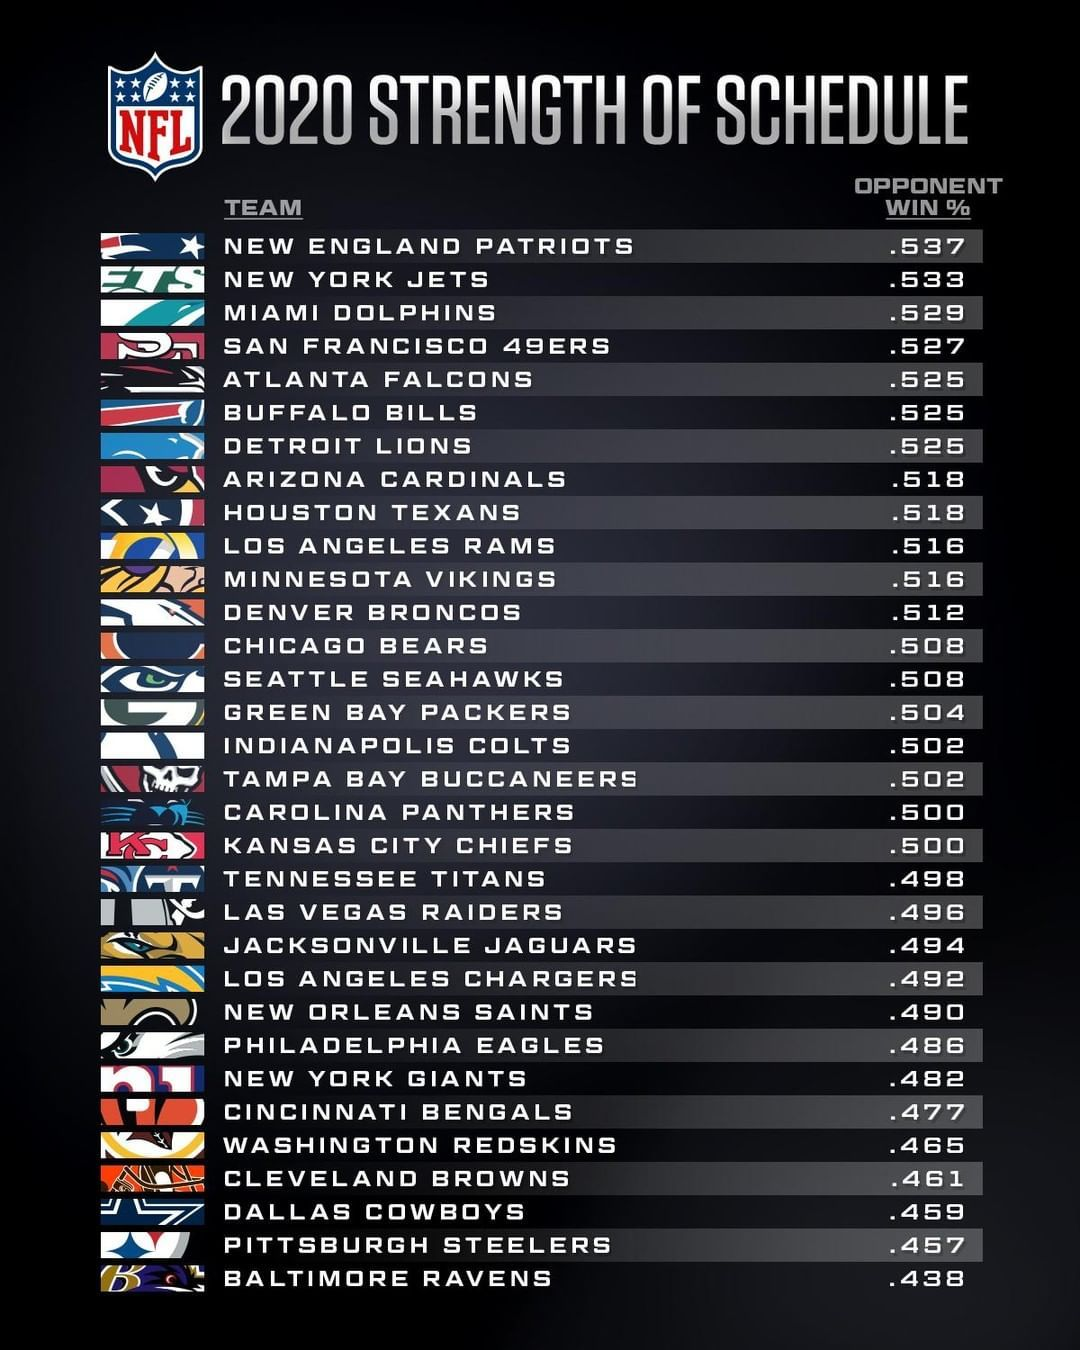 Nfl On Instagram 2020 Strength Of Schedule Where Does Your Team Fall In 2020 Nfl Printable Nfl Schedule Nfl Season